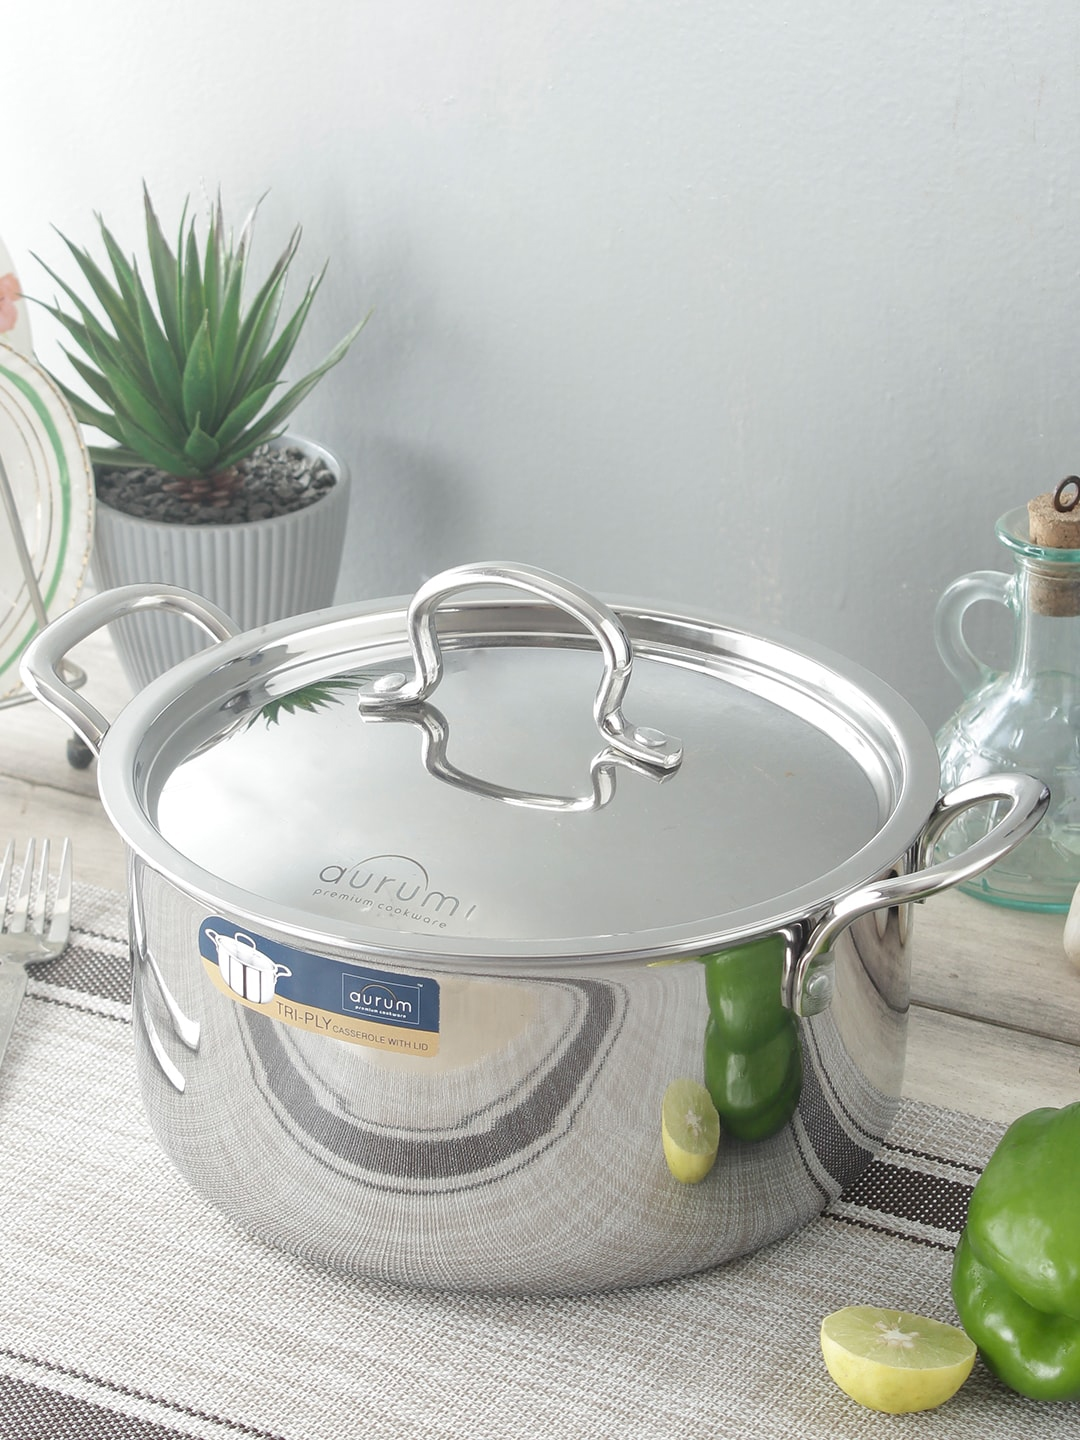 Aurum Triply Casserole With Stainless Steel Lid